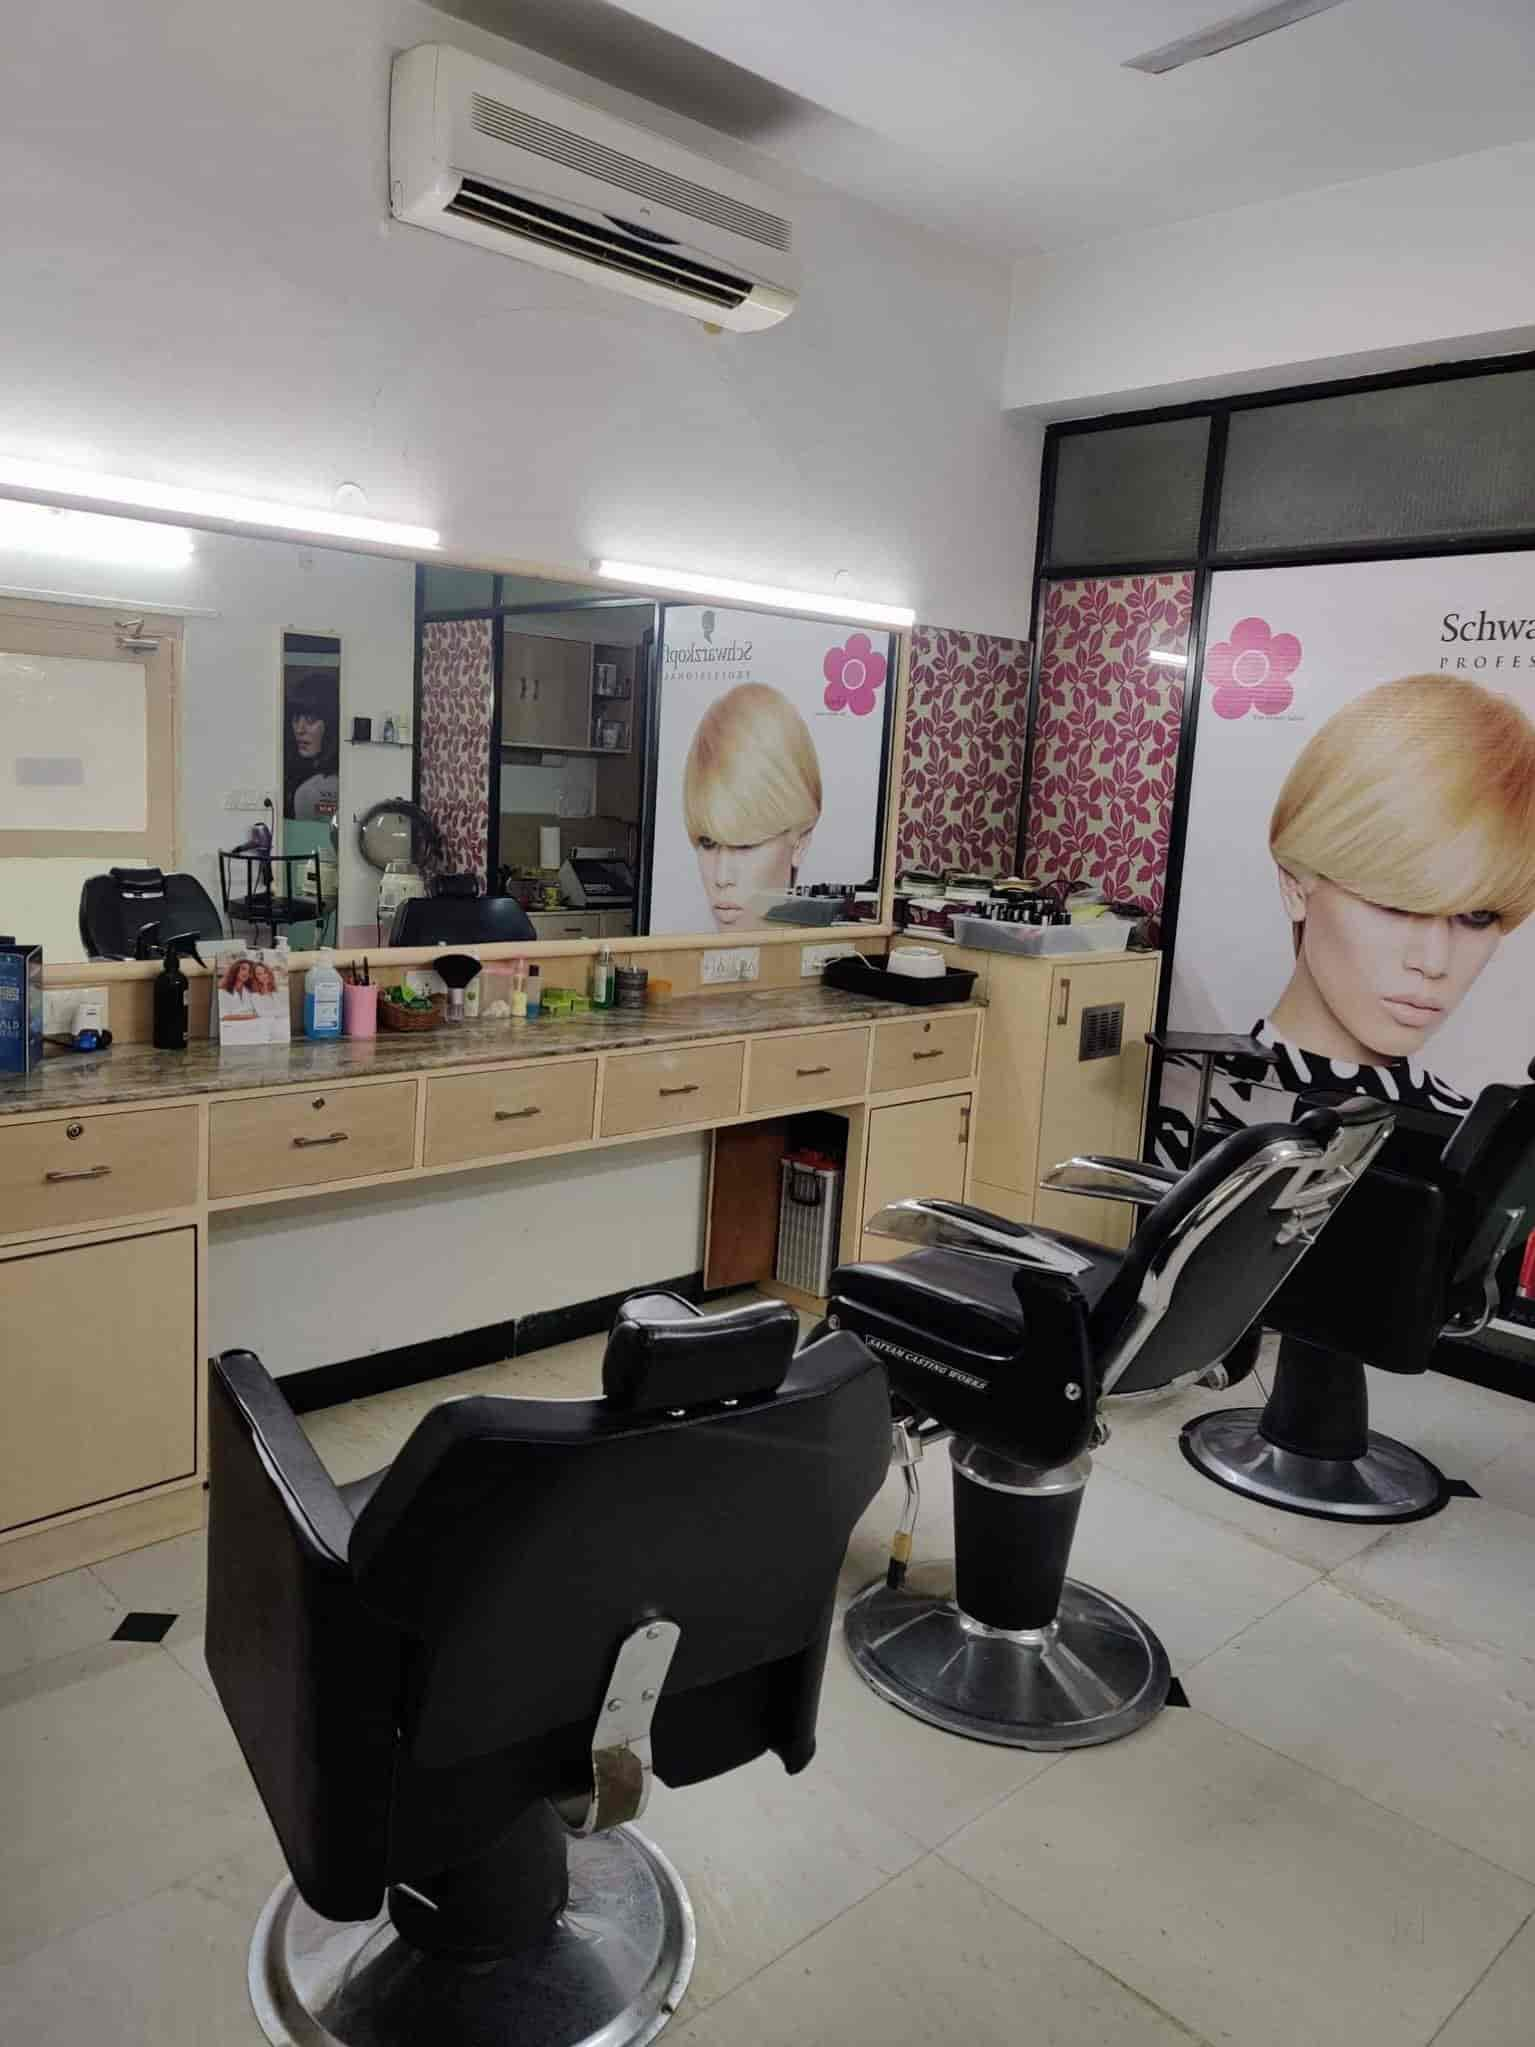 Top 100 Ladies Beauty Parlours in Bangalore - Beauty Salon near me - Justdial